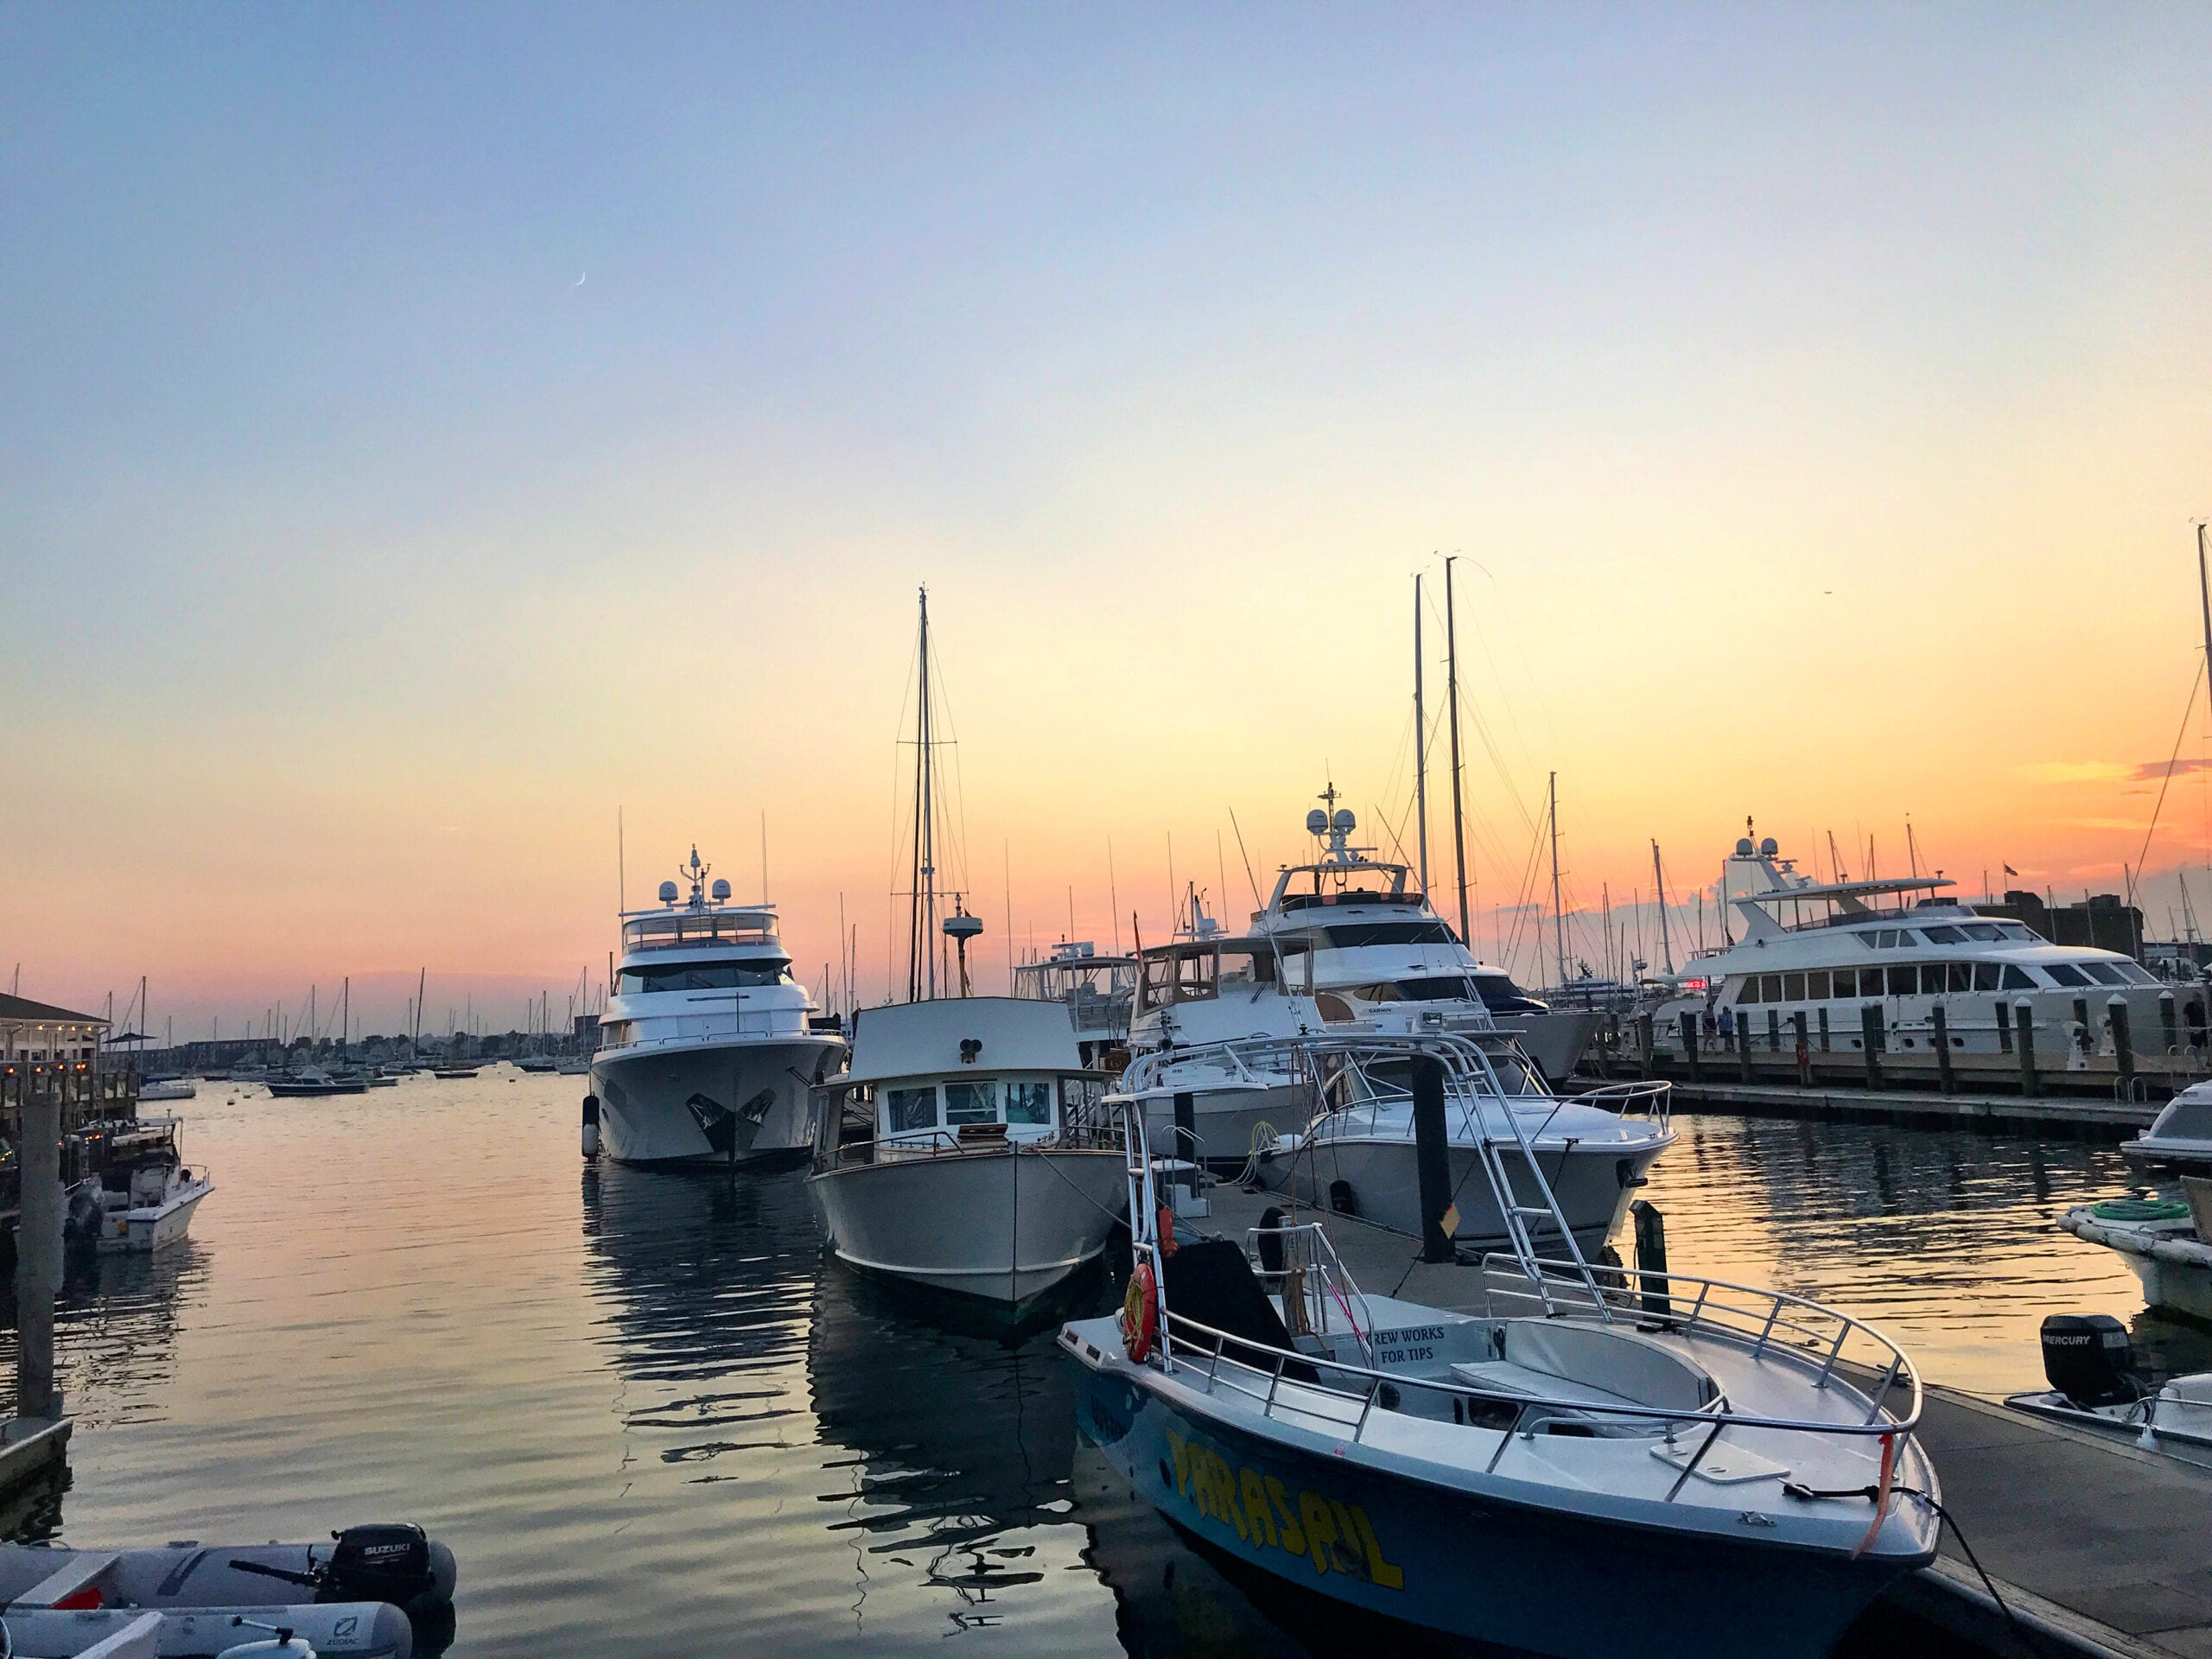 Rhode Island Newport Harbor, Sunset on the water with boats